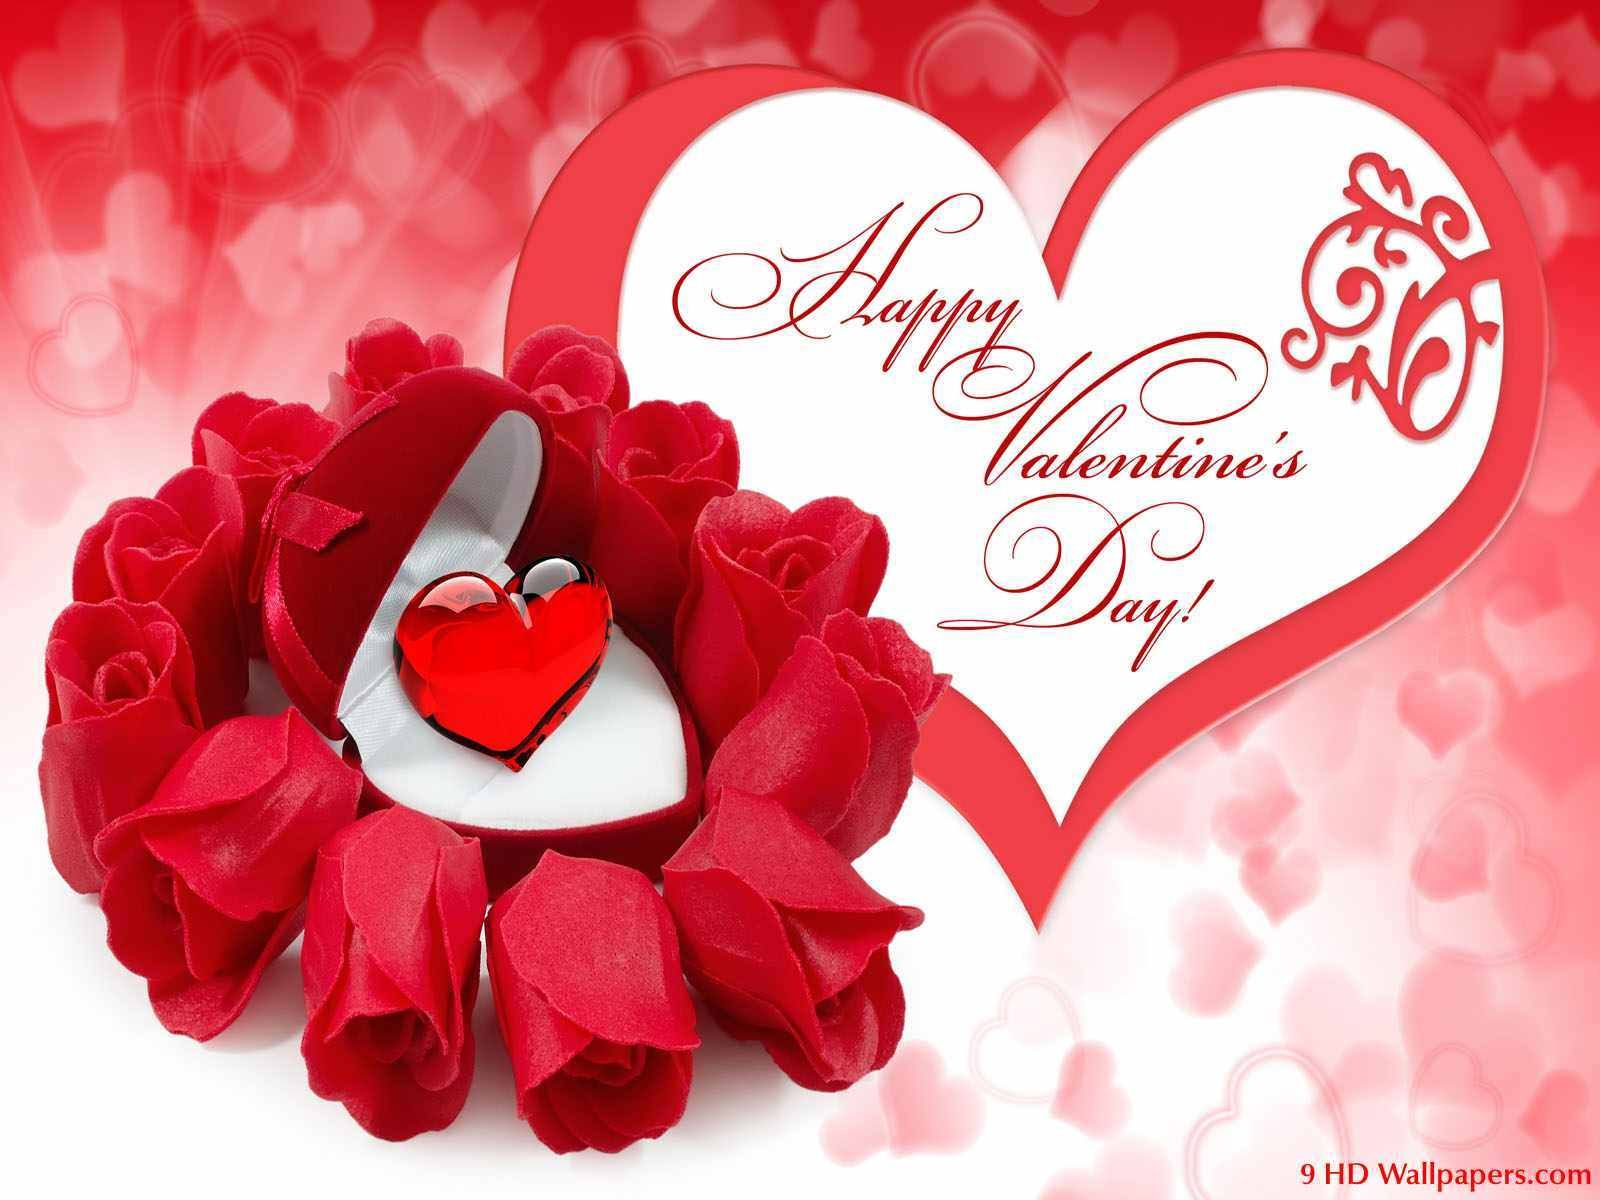 Happy valentines day sms me messages zorpia valentines day greeting happy valentines day sms me messages zorpia valentines day greeting cards for himboyfriend pictures and m4hsunfo Gallery